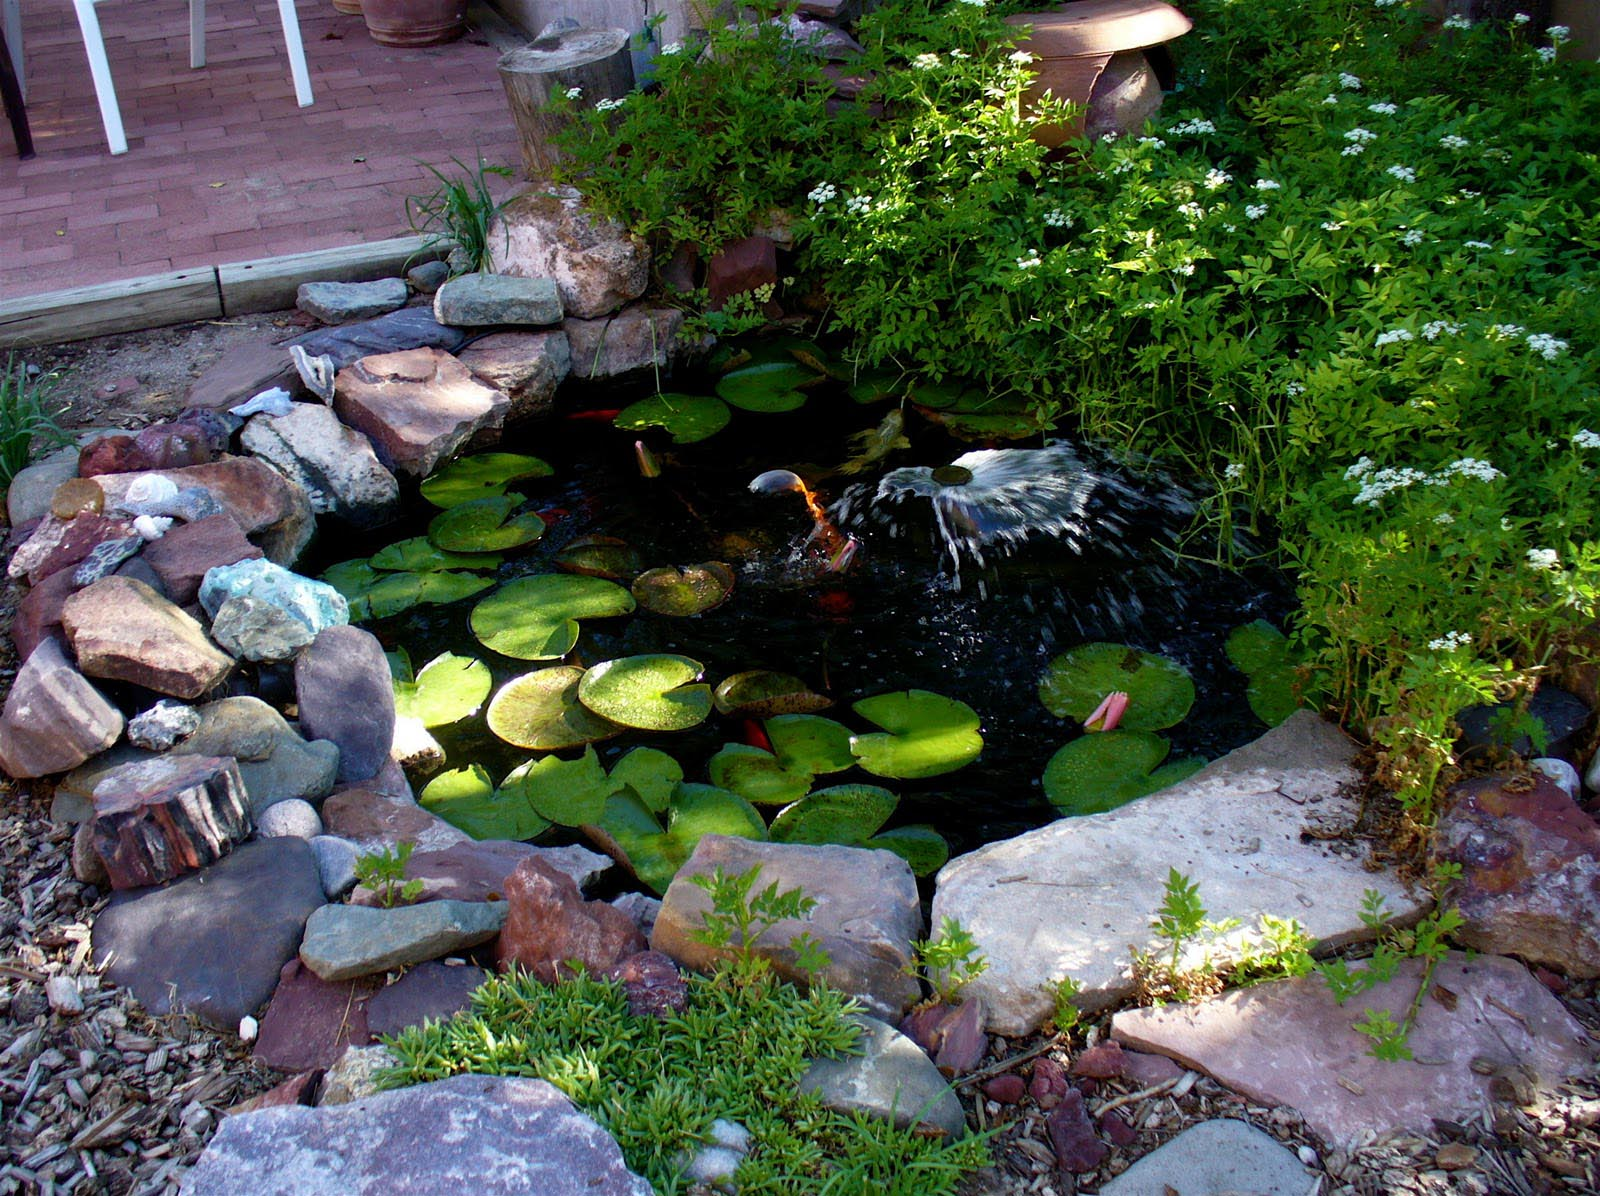 Garden fish pond ideas backyard design ideas for Garden pool designs ideas